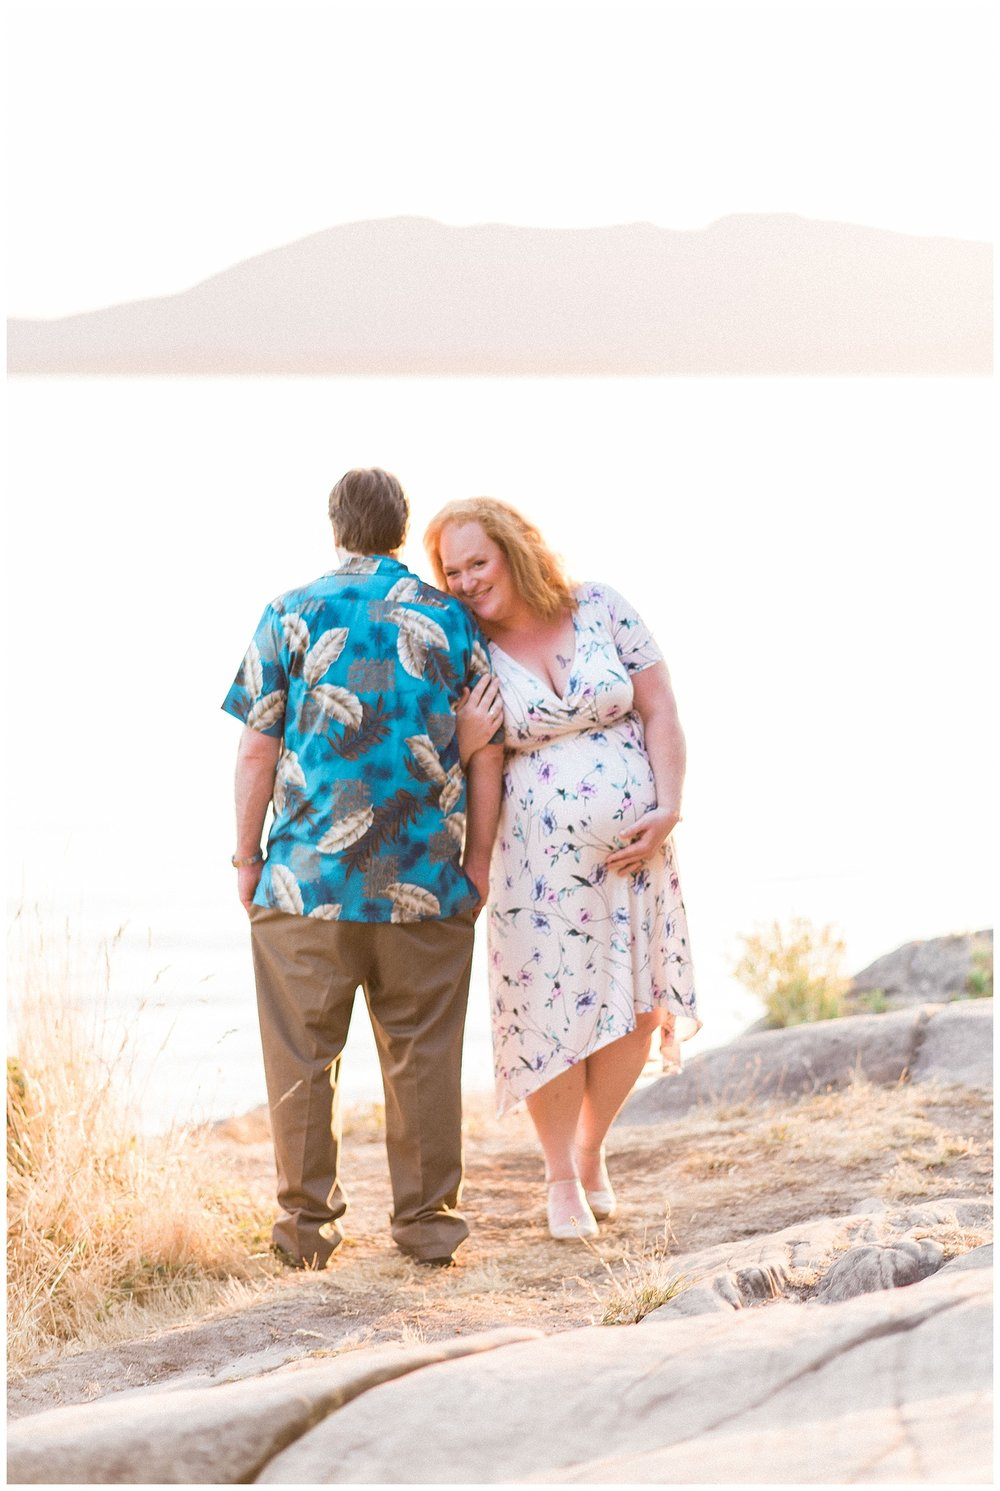 larrabee state park Maternity Photos. Baby Bump. Pregnant. Belli